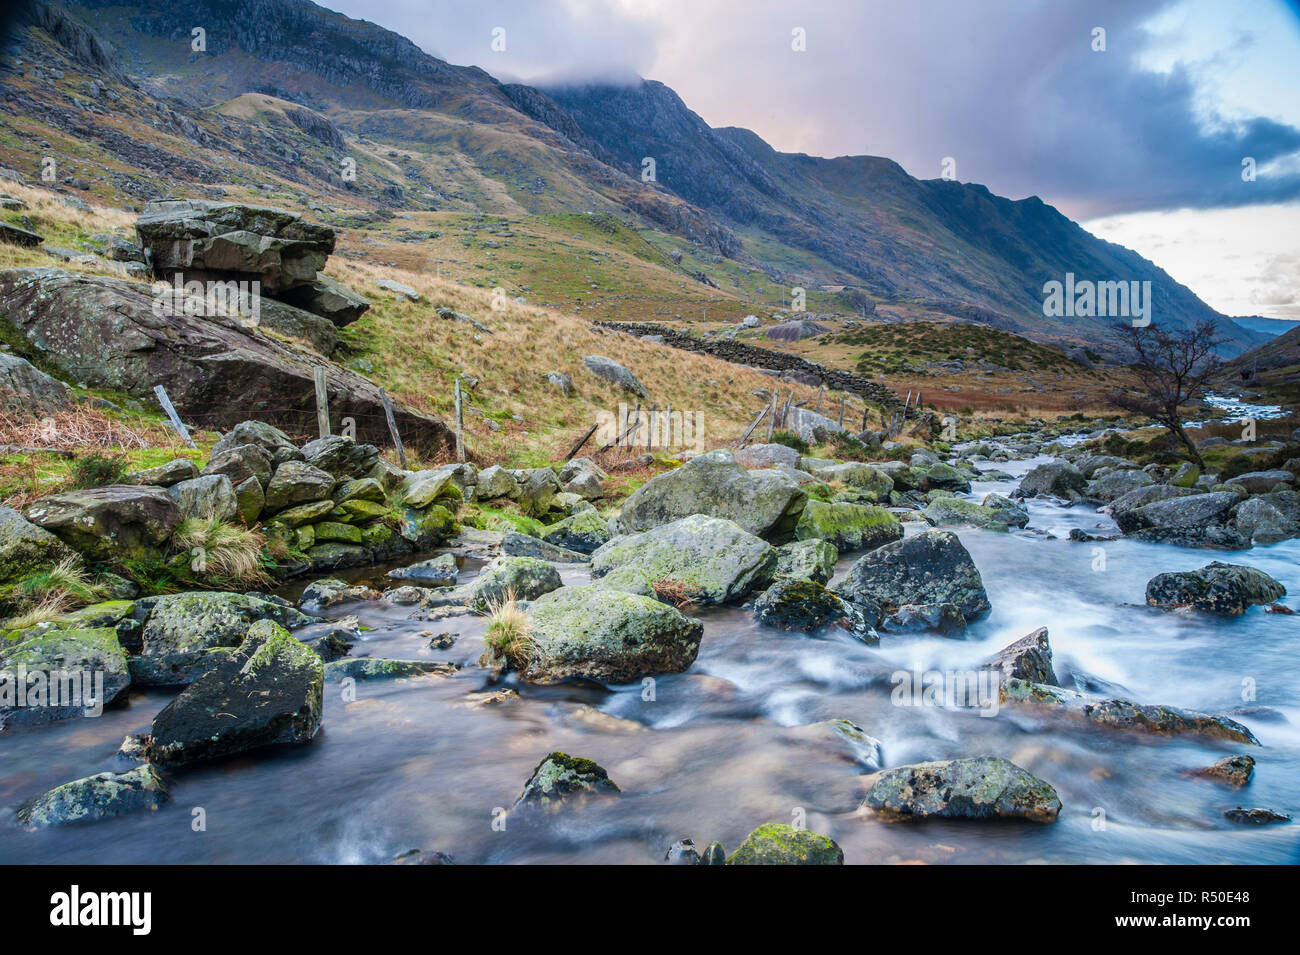 Welsh landscape river and mountains - Stock Image